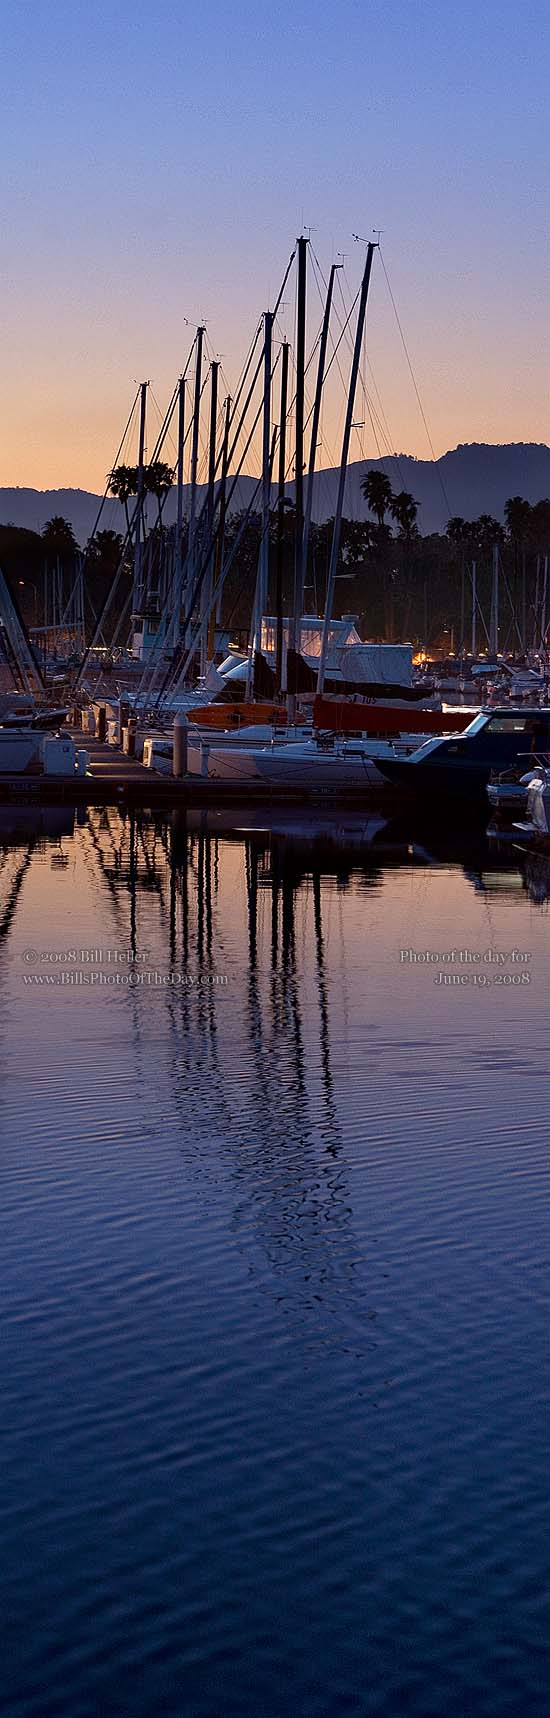 Sailboats in the sunset light at the Santa Barbara Harbor